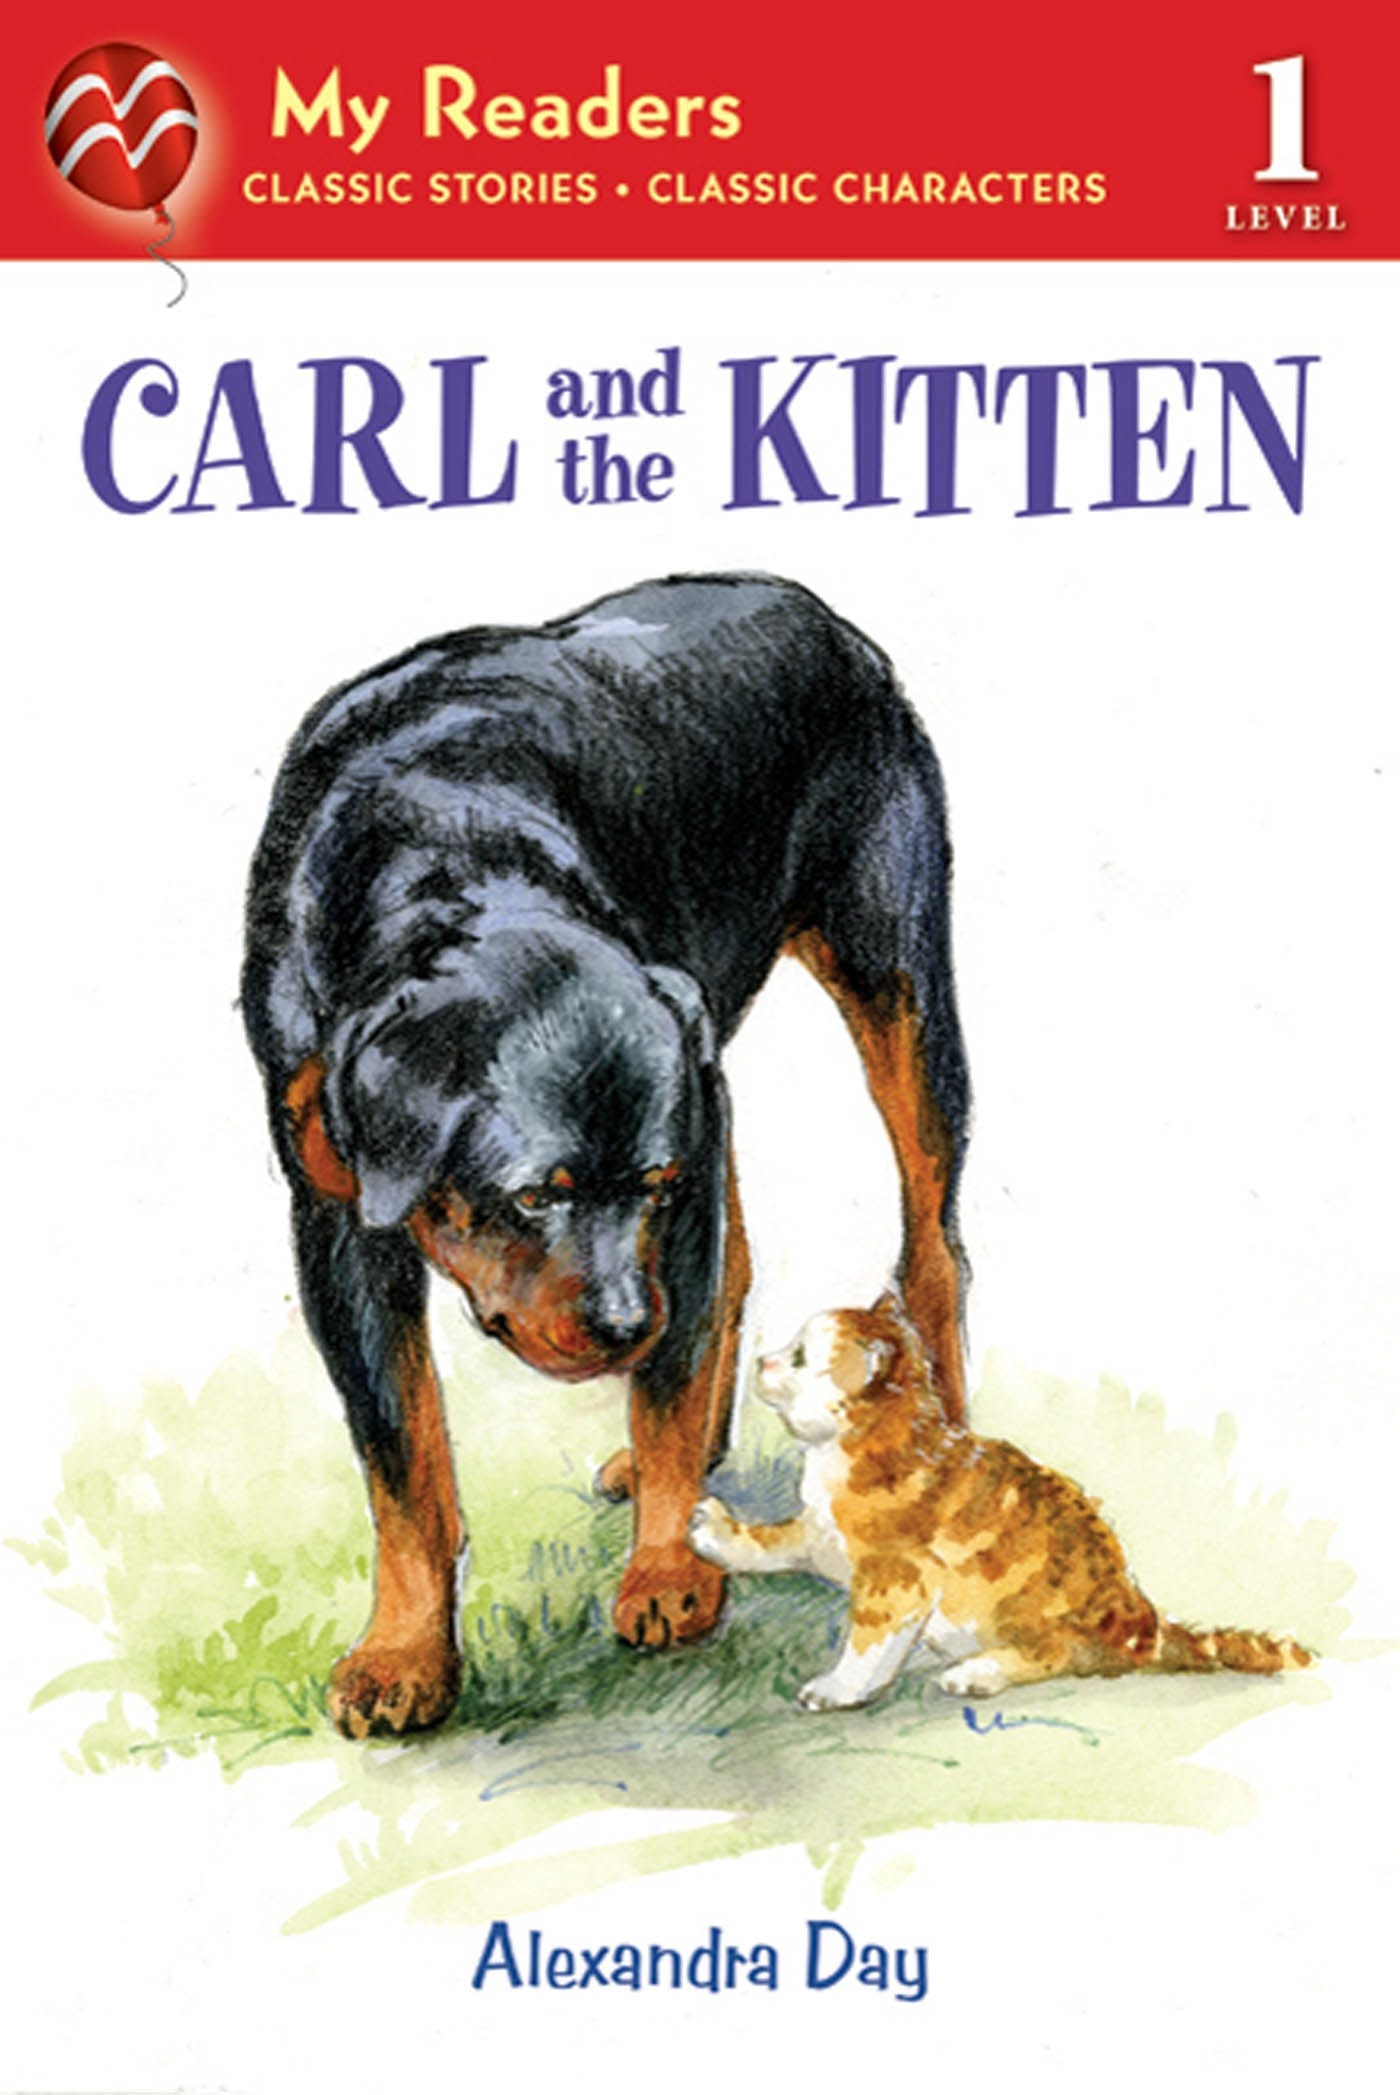 Image of Carl and the Kitten